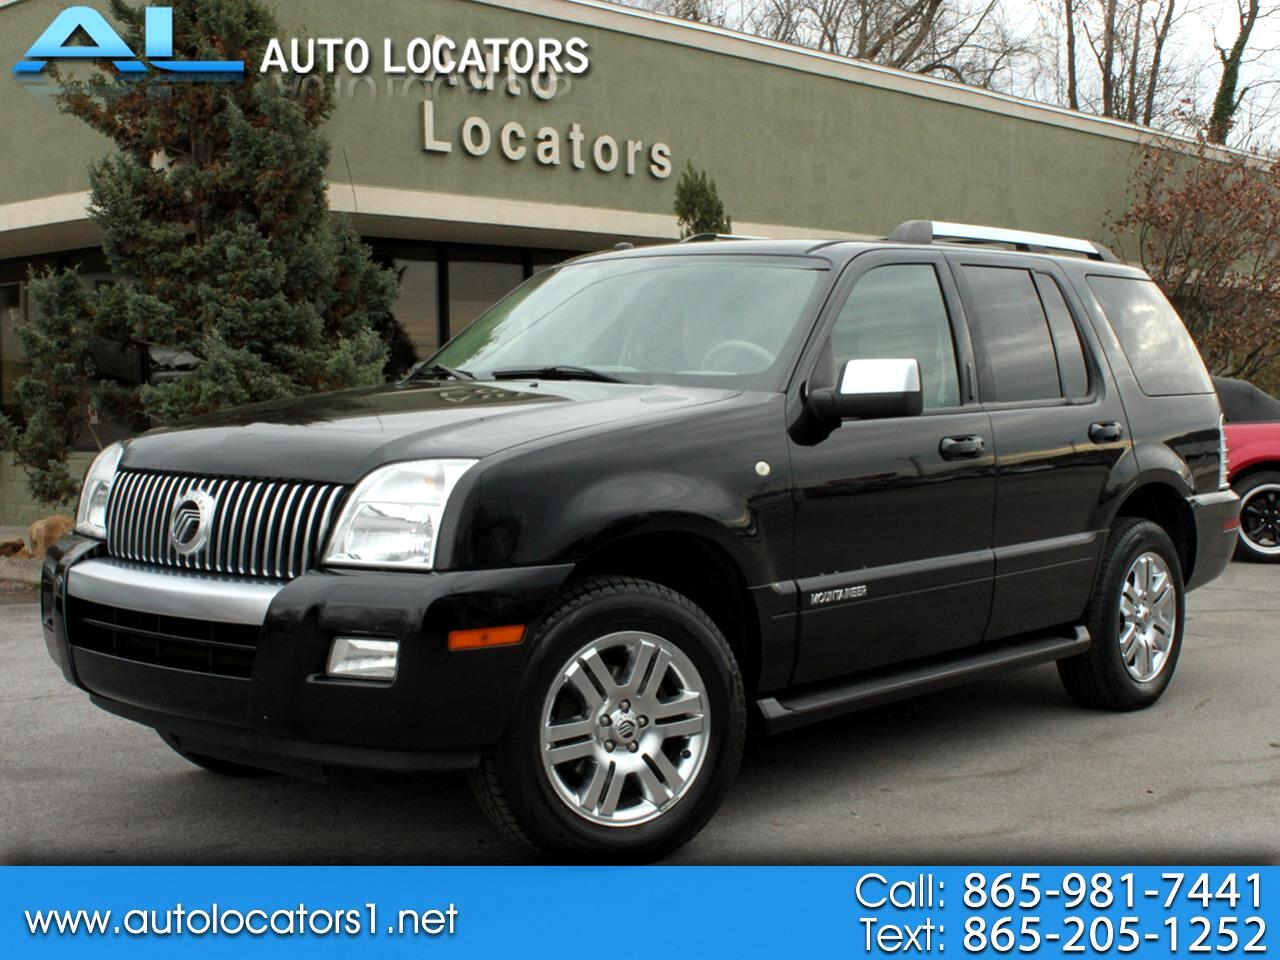 Mercury Mountaineer AWD 4dr V6 Premier 2009